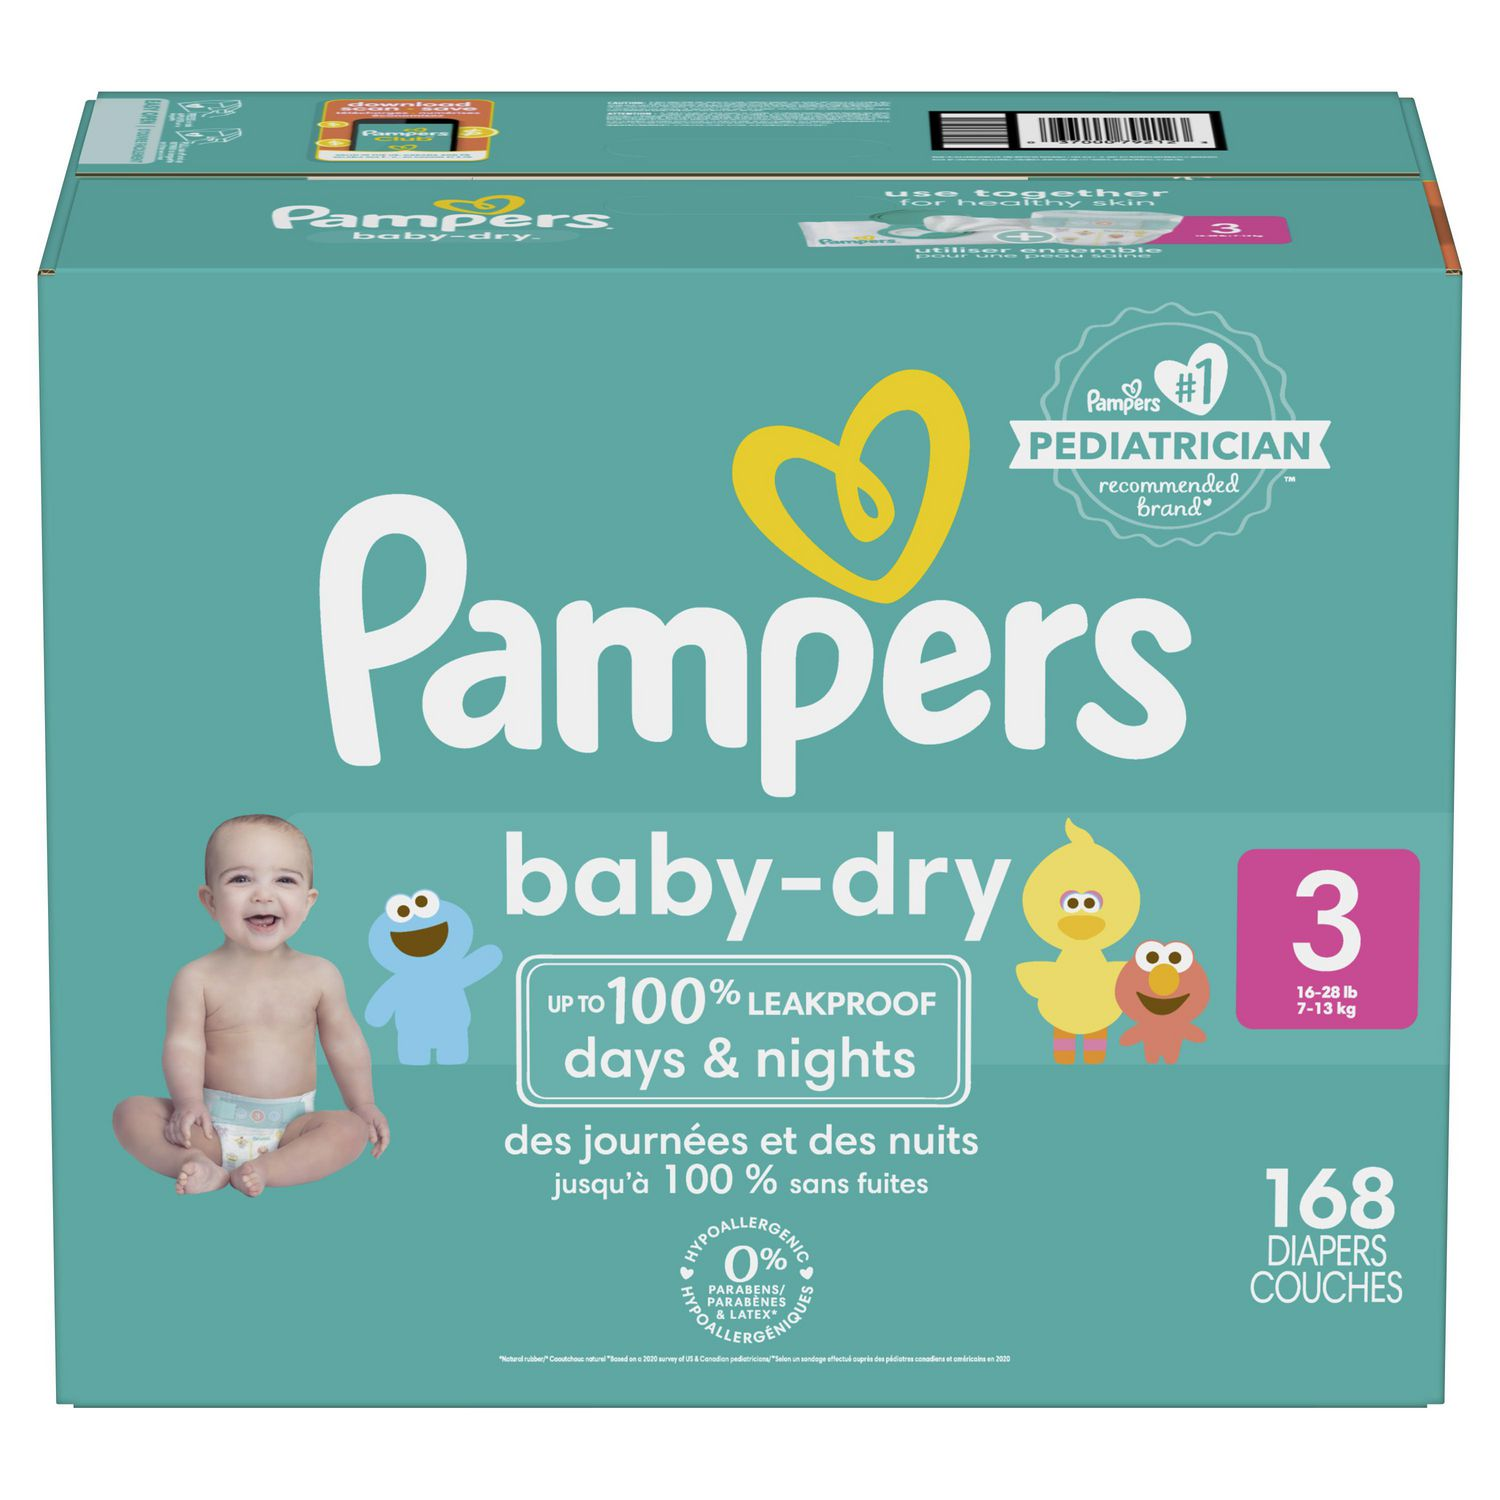 Couche Pampers Prix Pampers Couches Baby Dry Format Super Économique